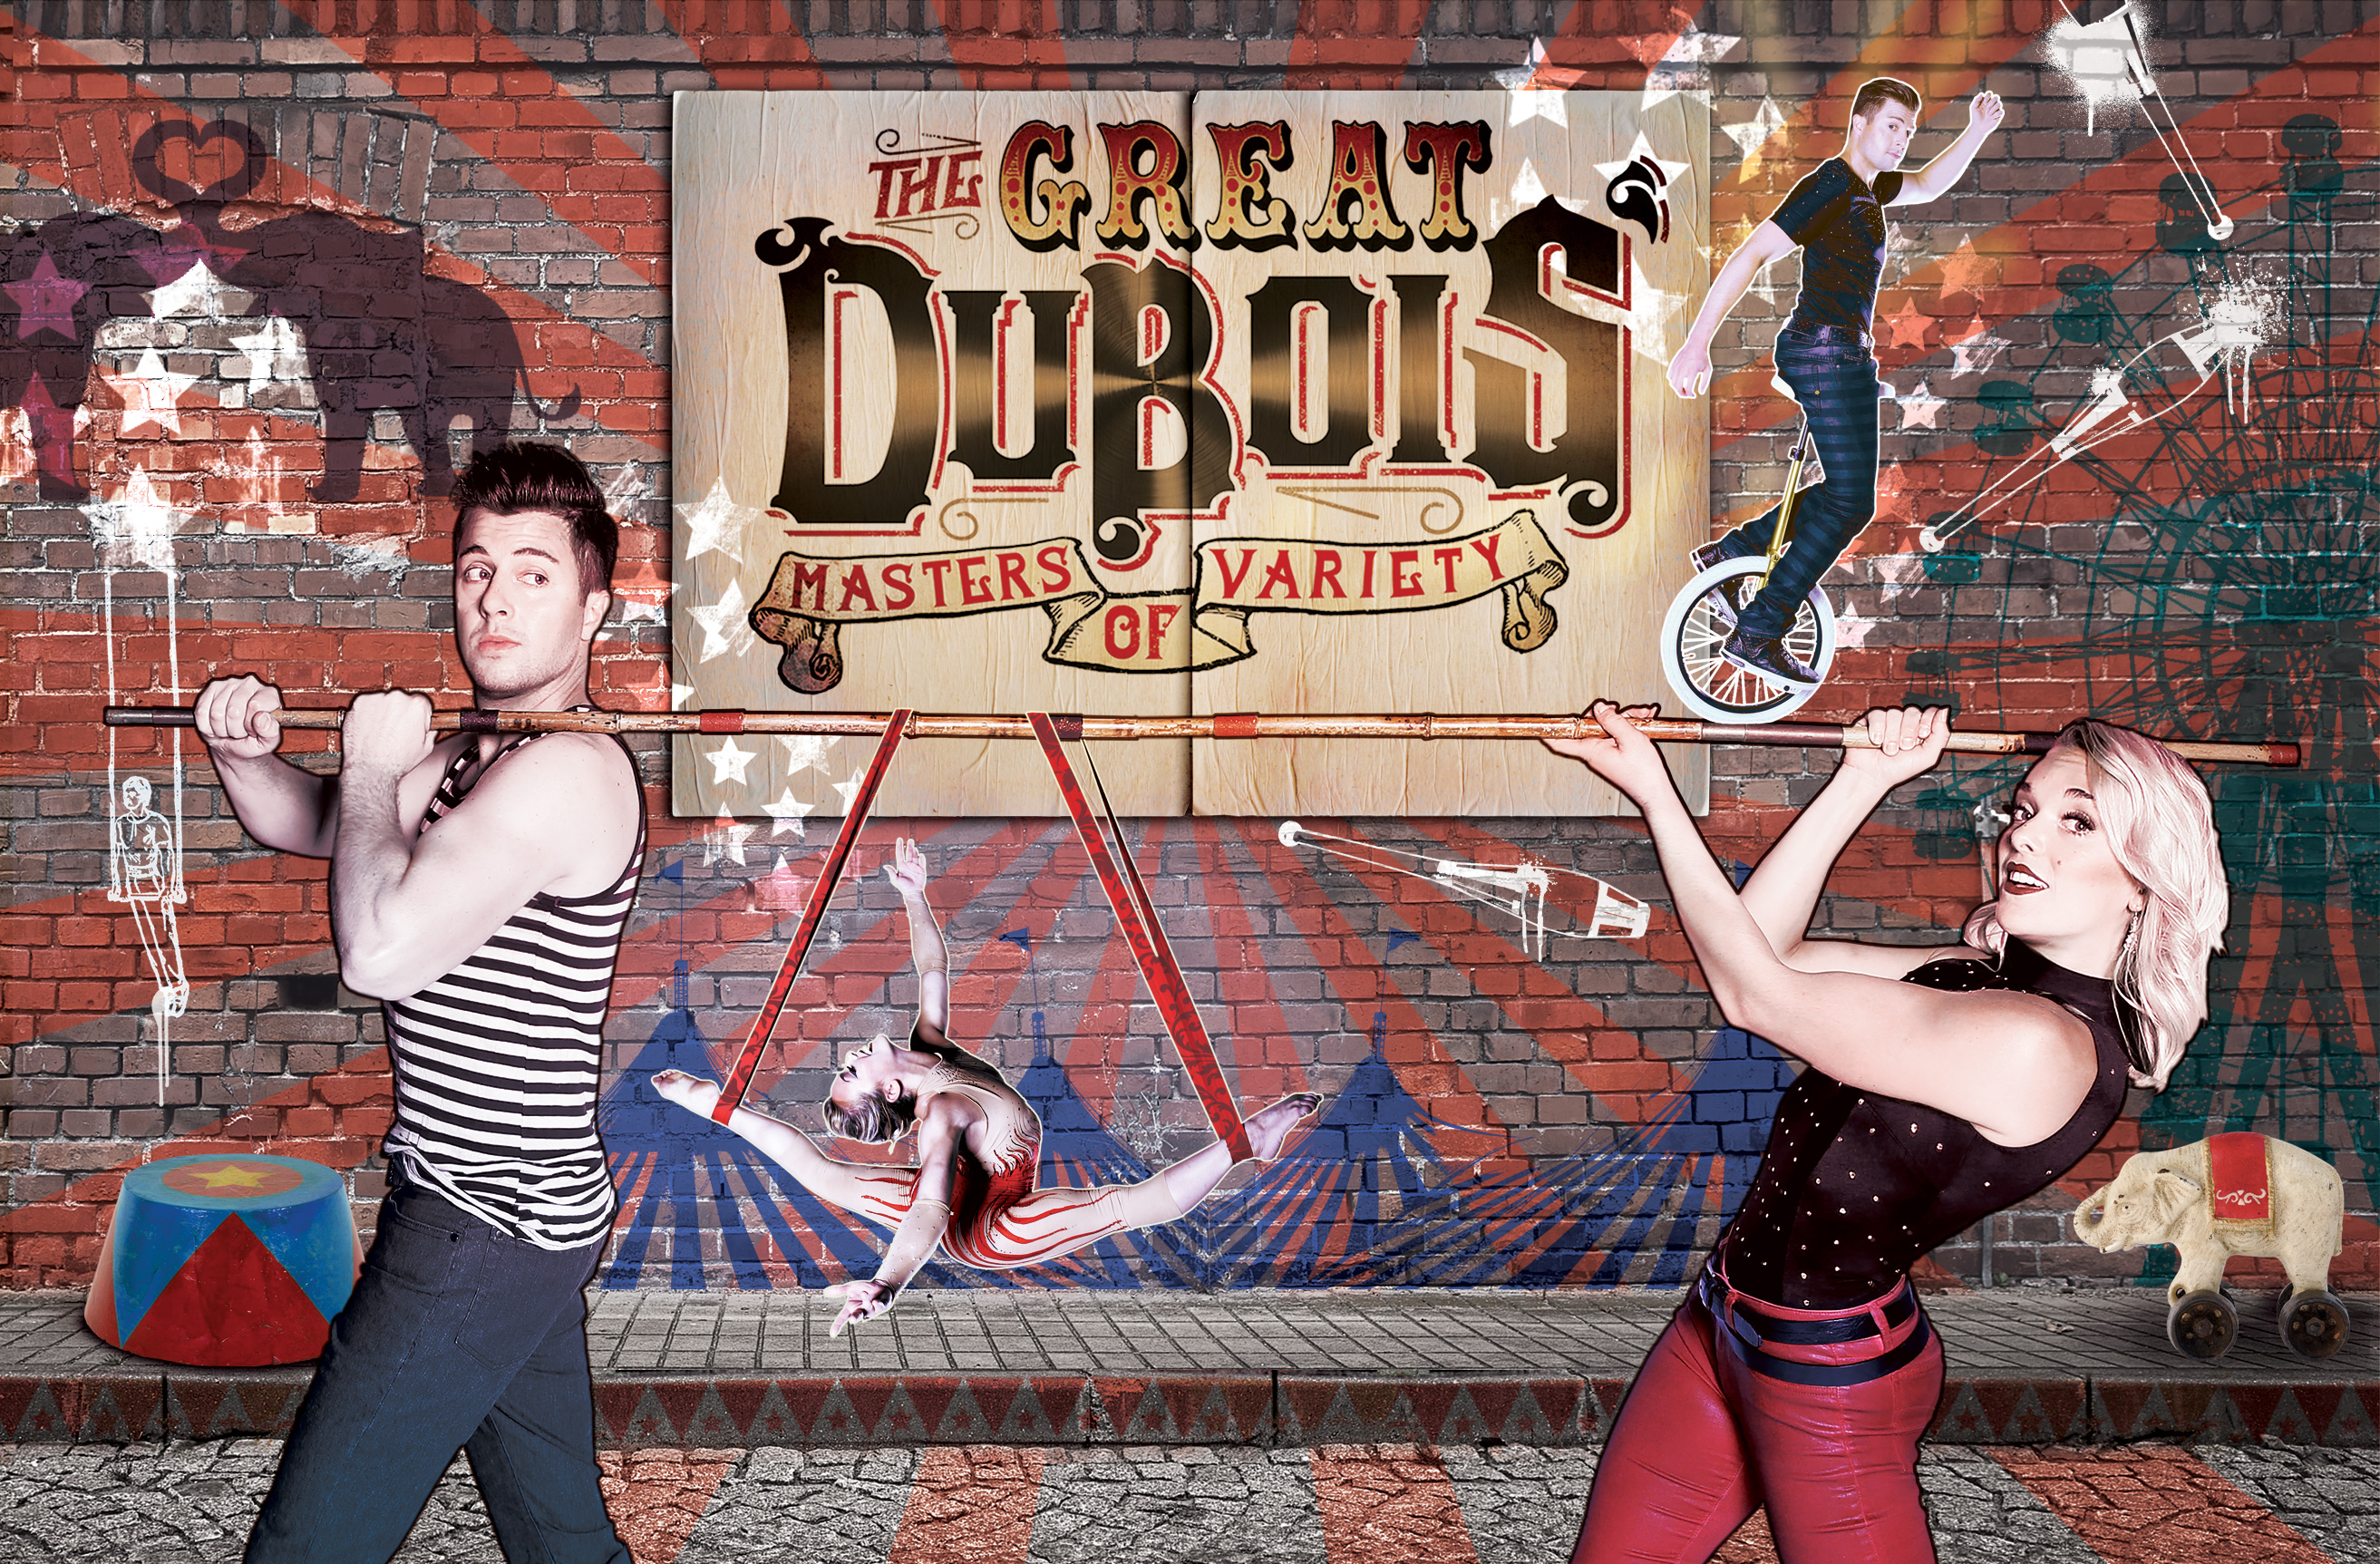 The Great DuBois'